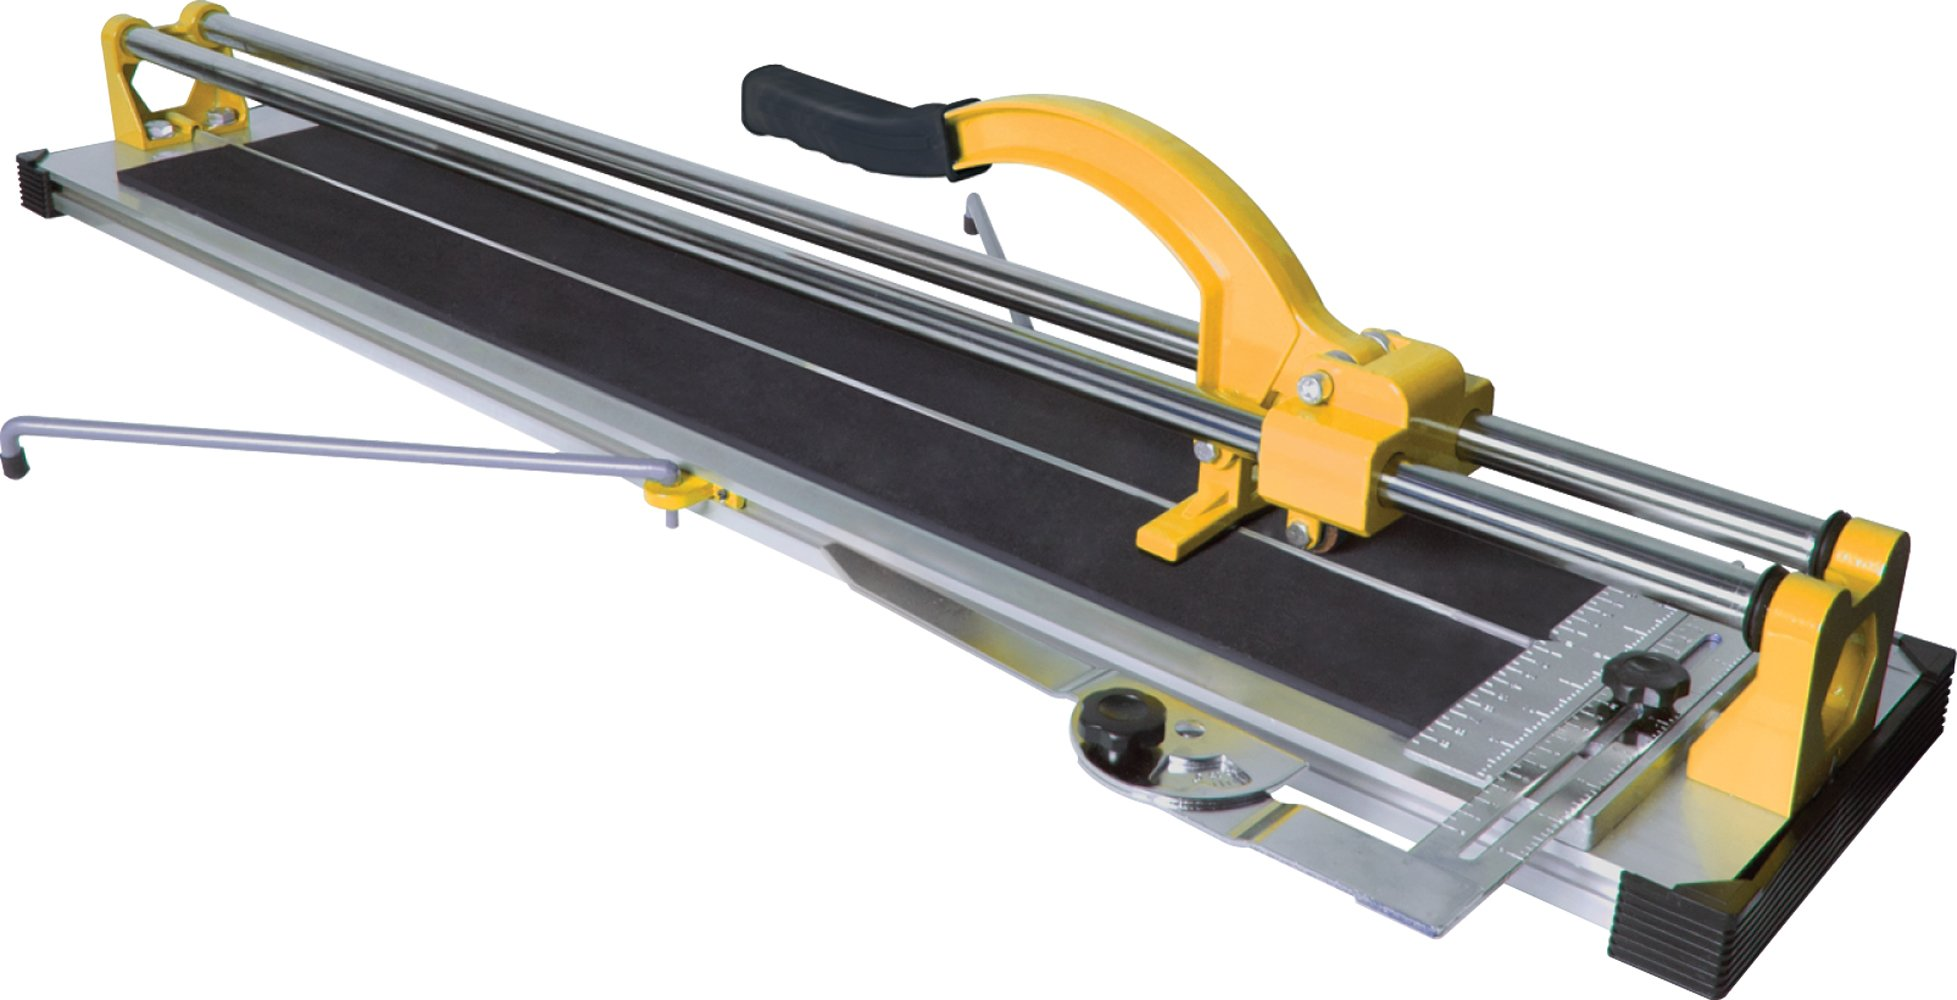 QEP 10900Q  35-Inch Manual Tile Cutter with Tungsten Carbide Scoring Wheel for Porcelain and Ceramic Tiles by QEP